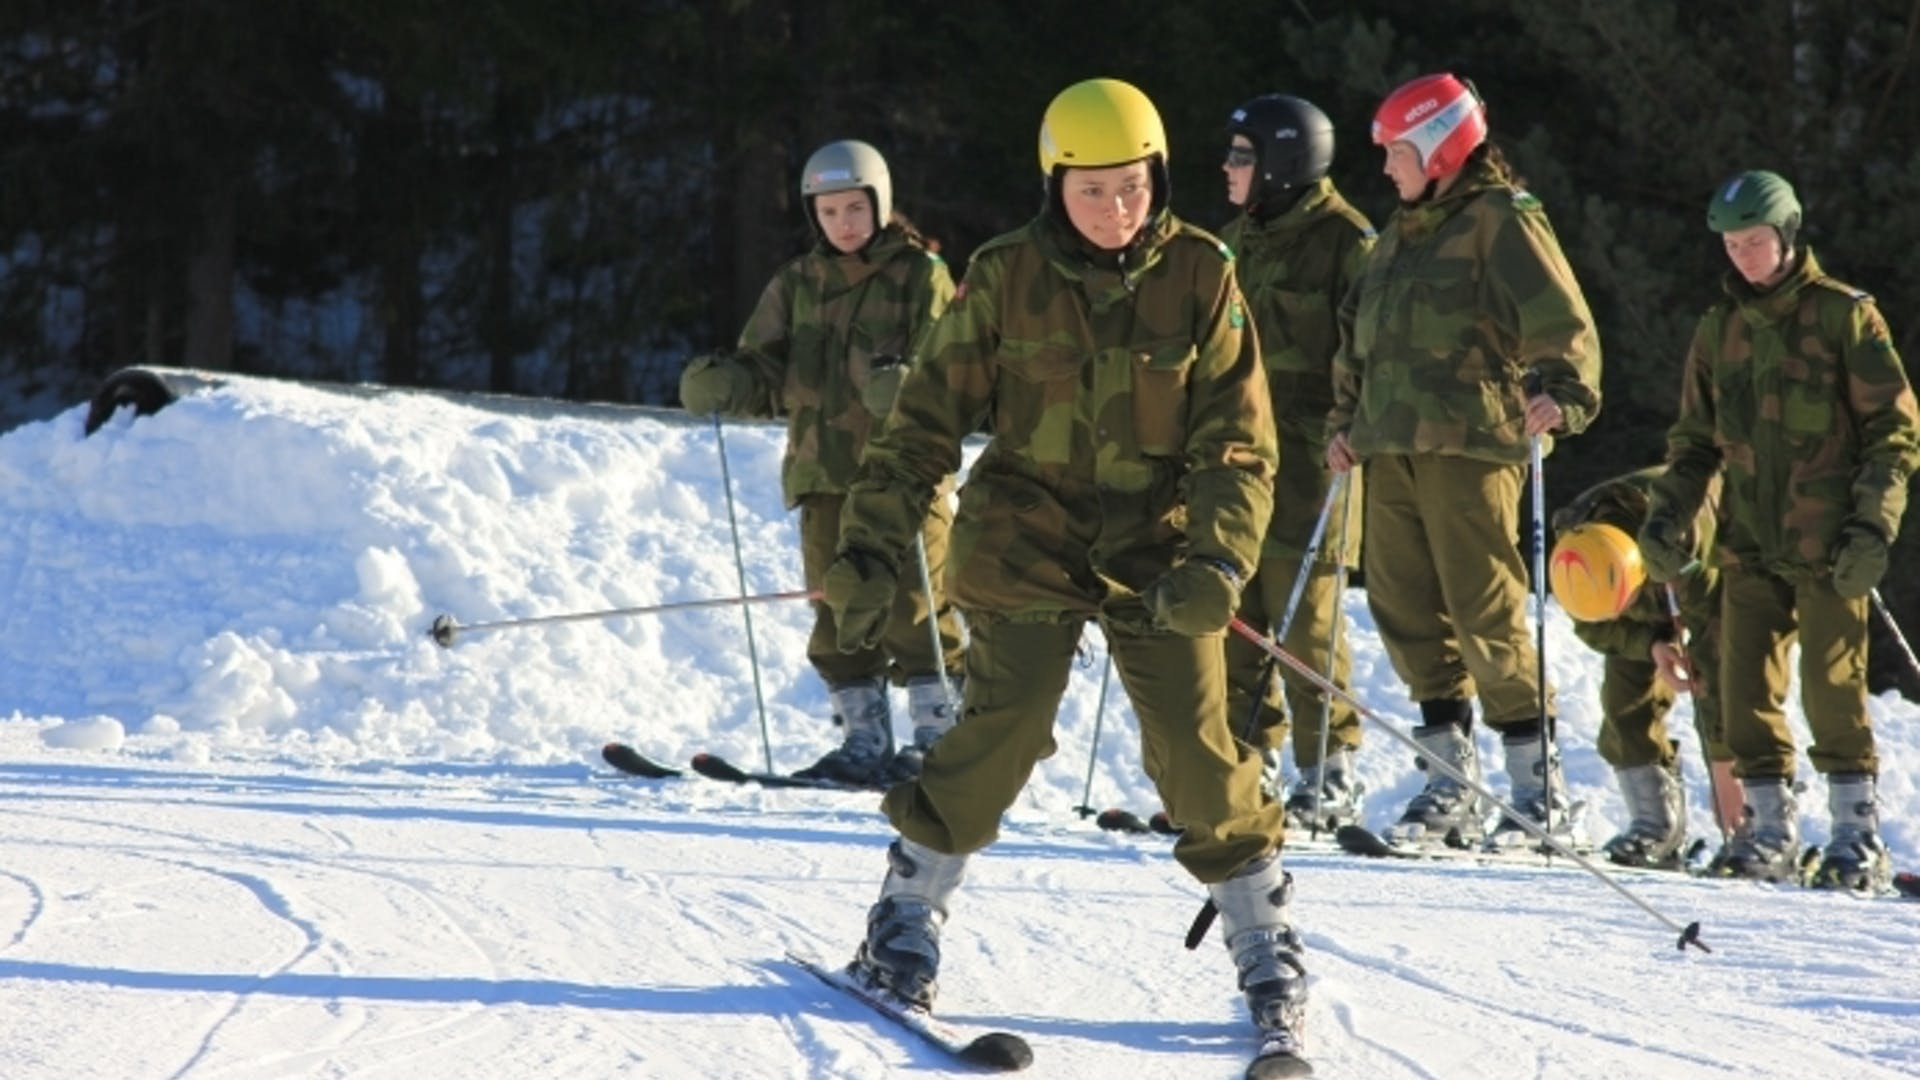 ACF cadets skiing in Norway 1 695 463 c1